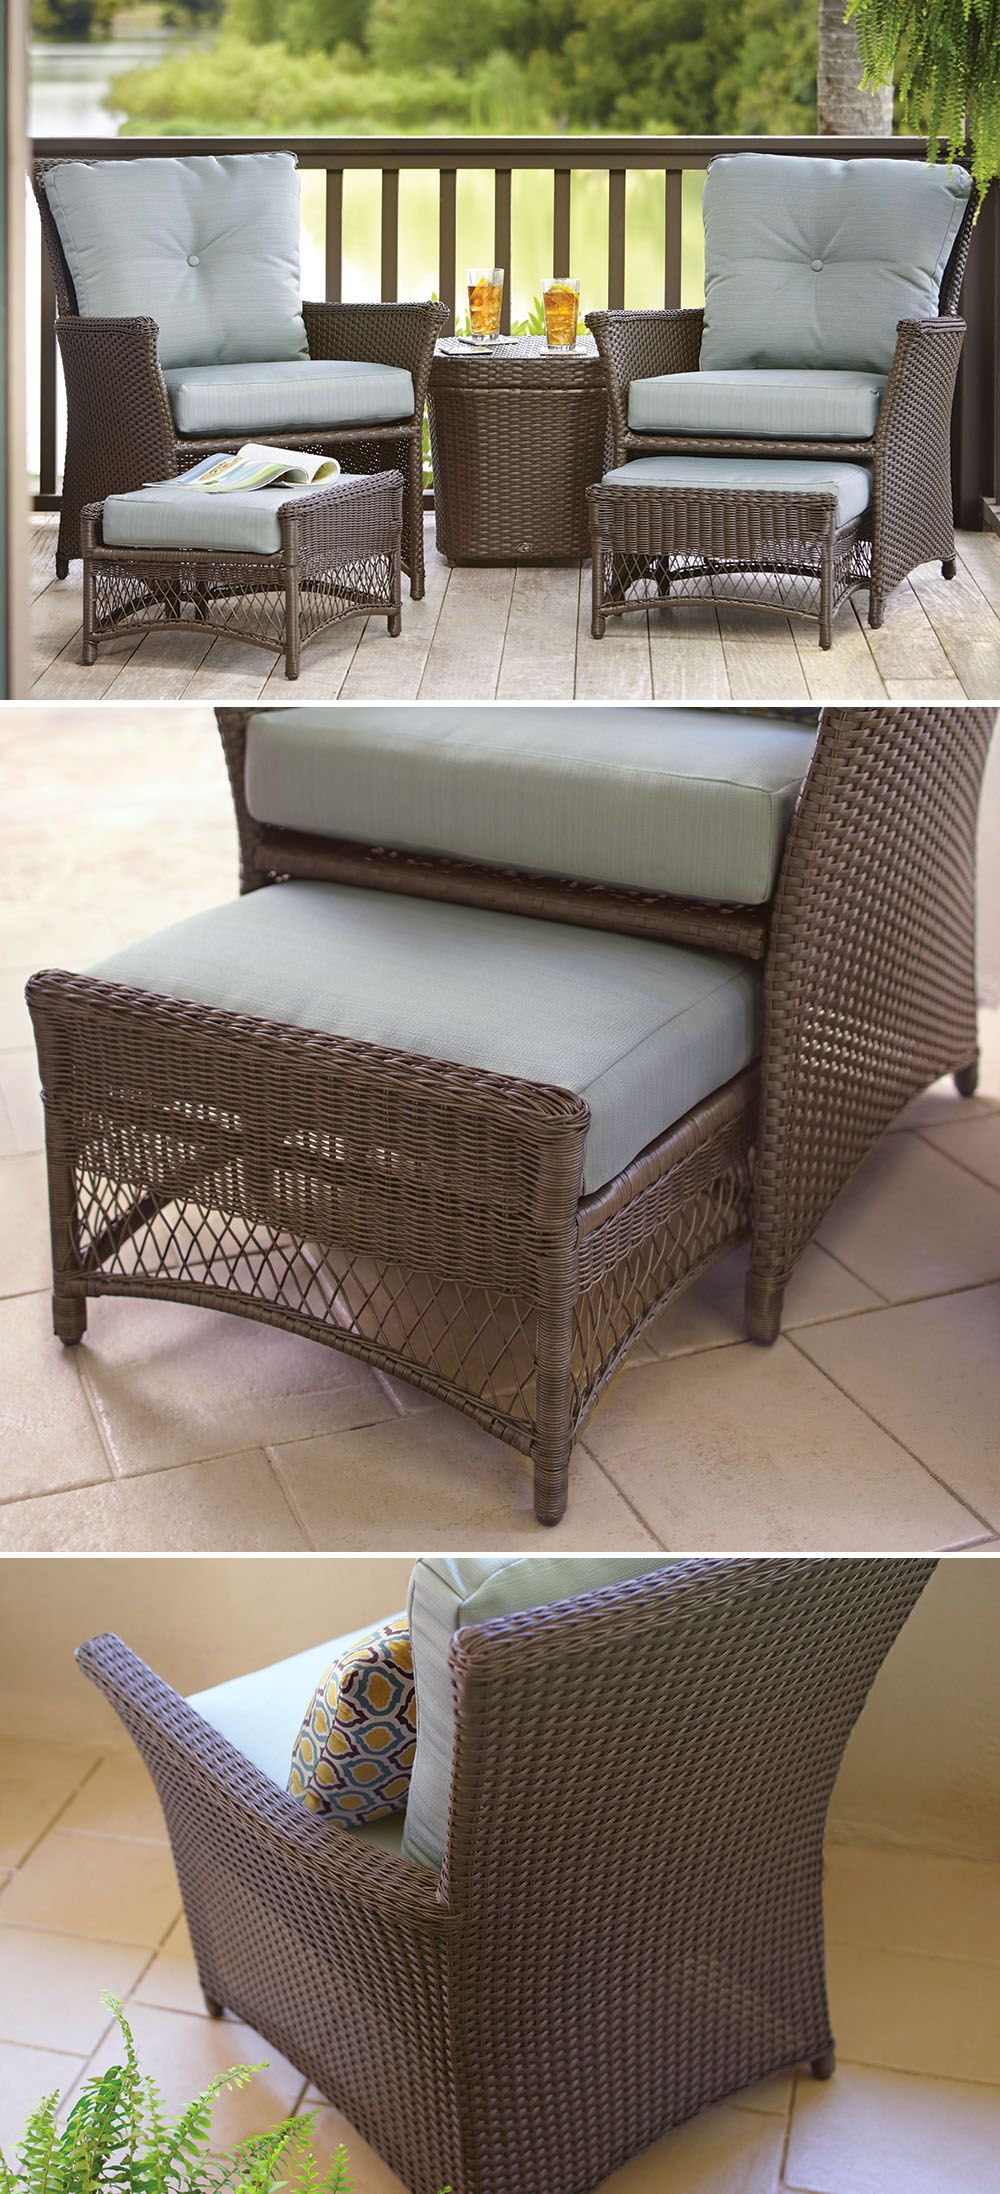 This Affordable Patio Set Is Just The Right Size For Your Small Patio,  Balcony Or Porch. It Includes Two Stationary Chairs, Cushions, Two Lumbar  Pillows, ...